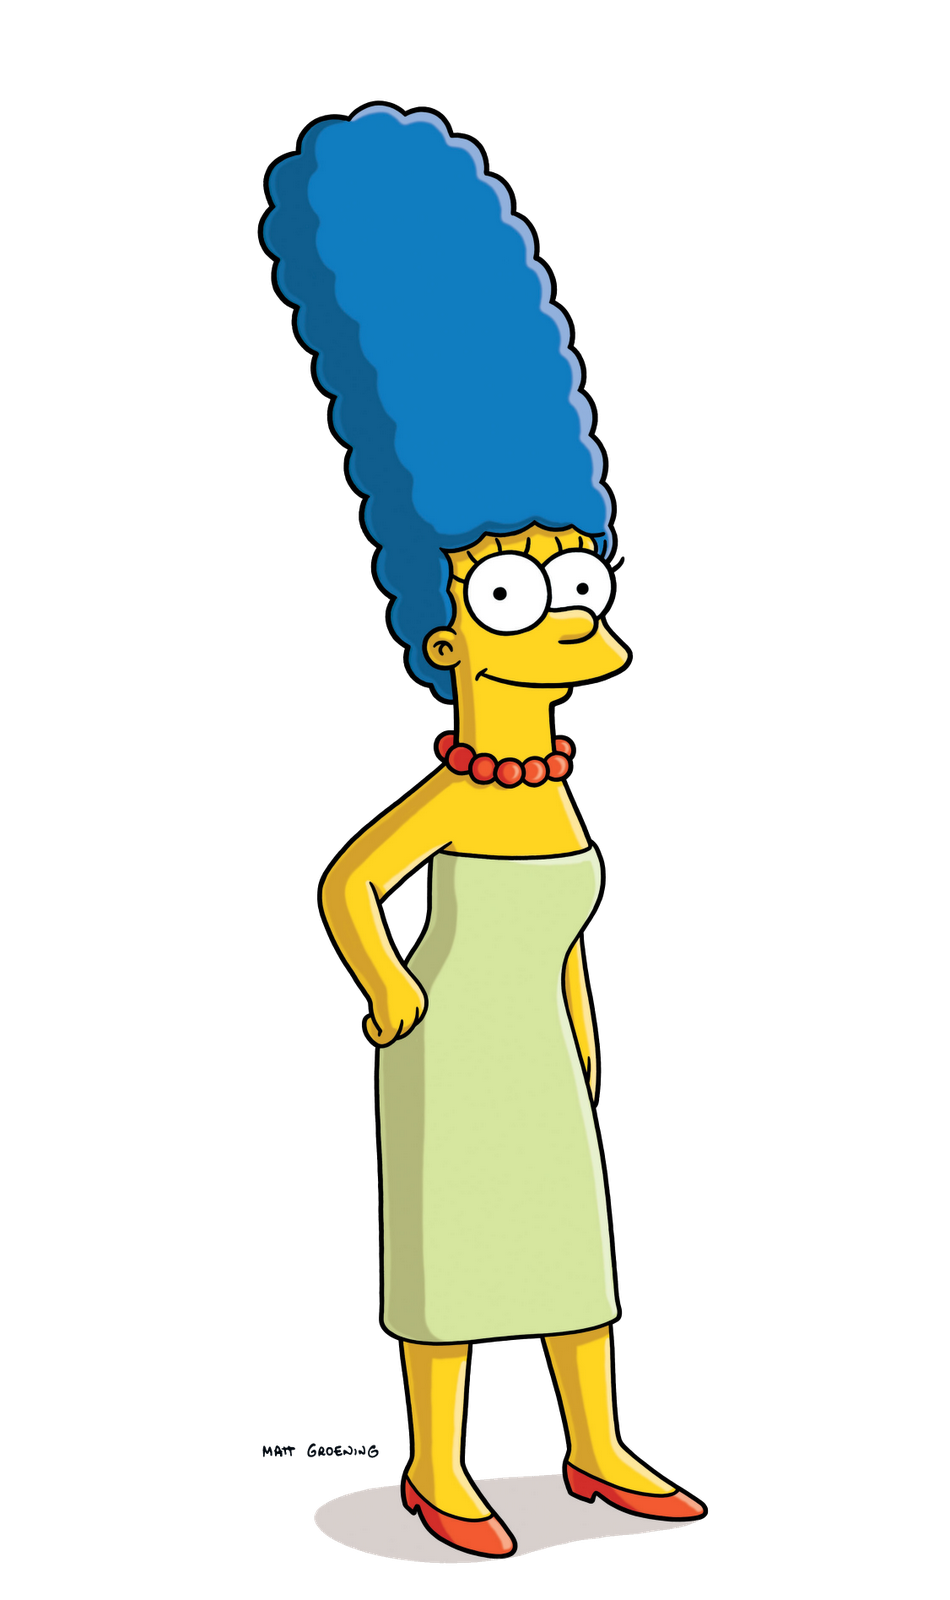 Marge Simpson Png image #39232